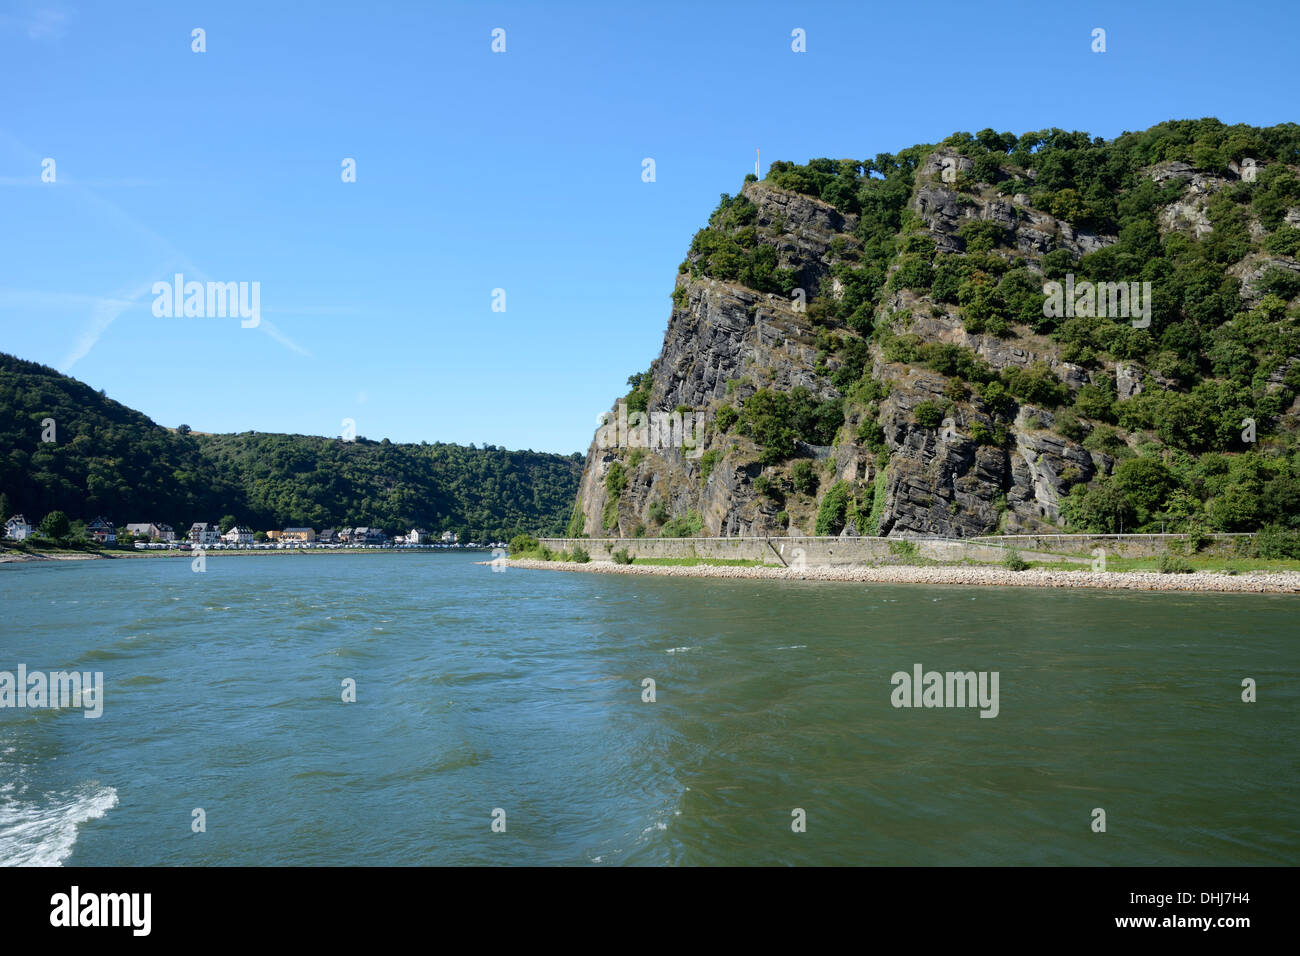 The legendary Loreley Rock at the river Rhine. Stock Photo